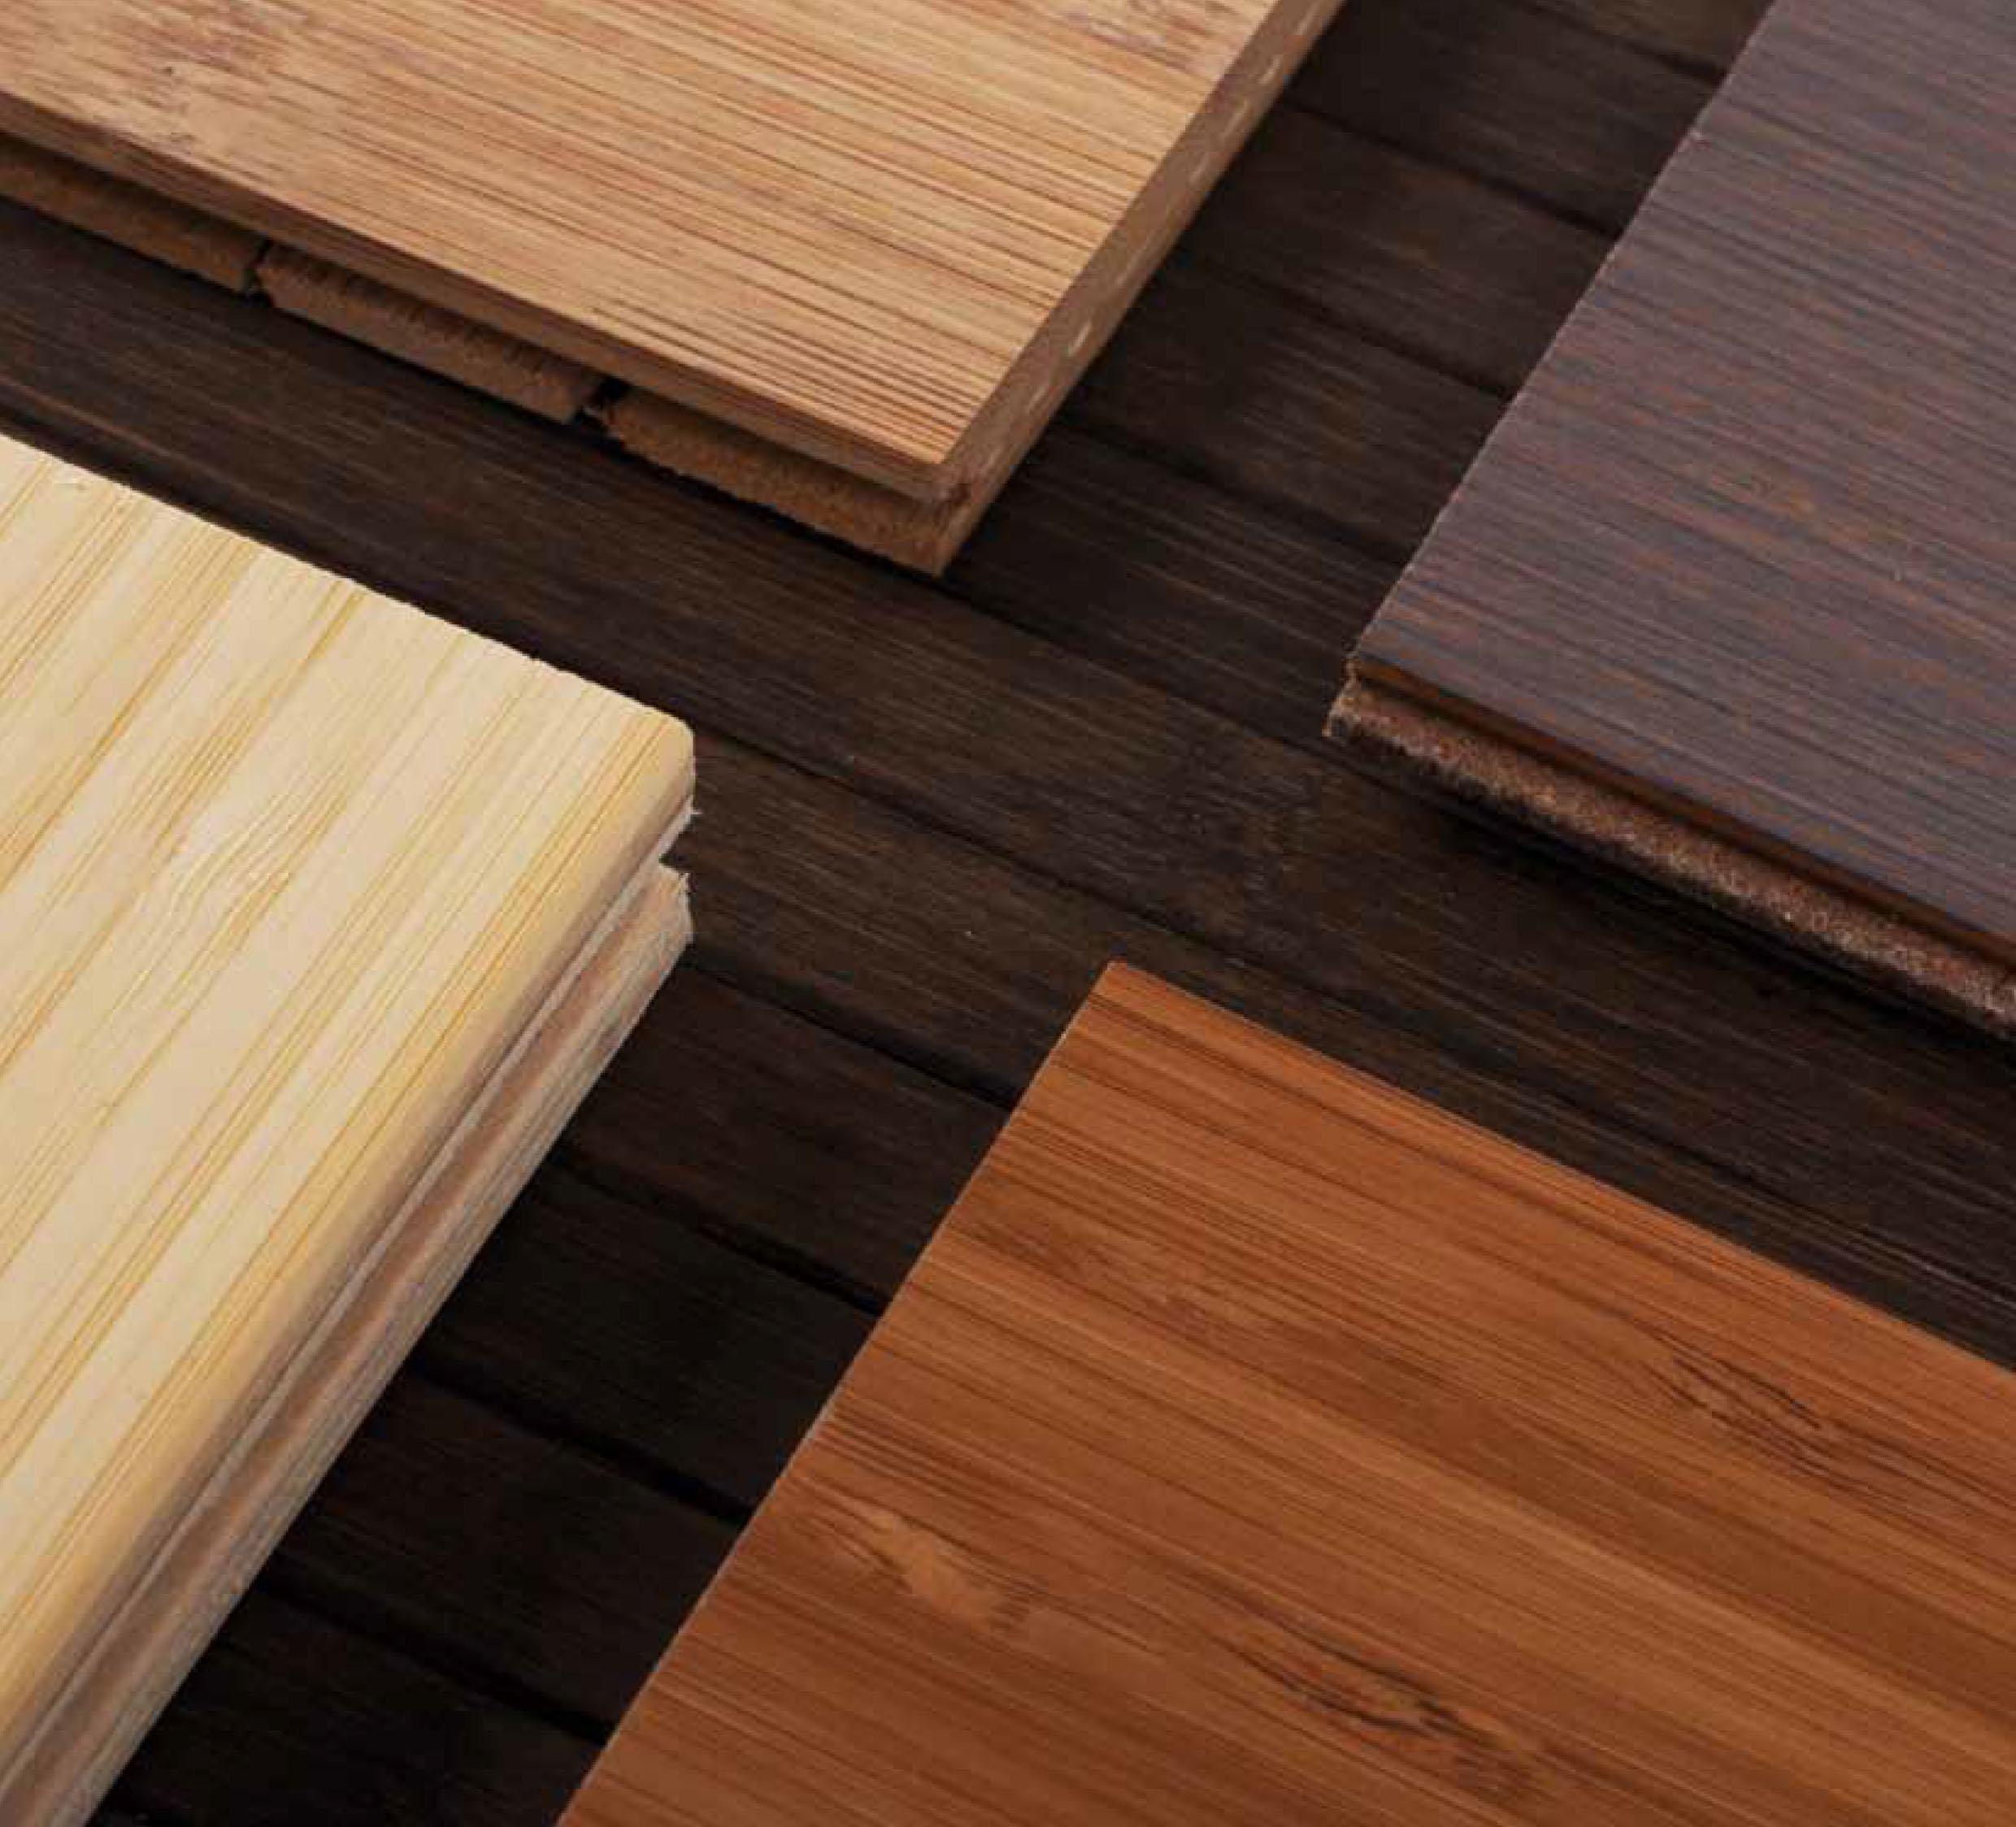 Moso Bamboo Surfaces – Bamboo Fooring Beams Panels Veneer and